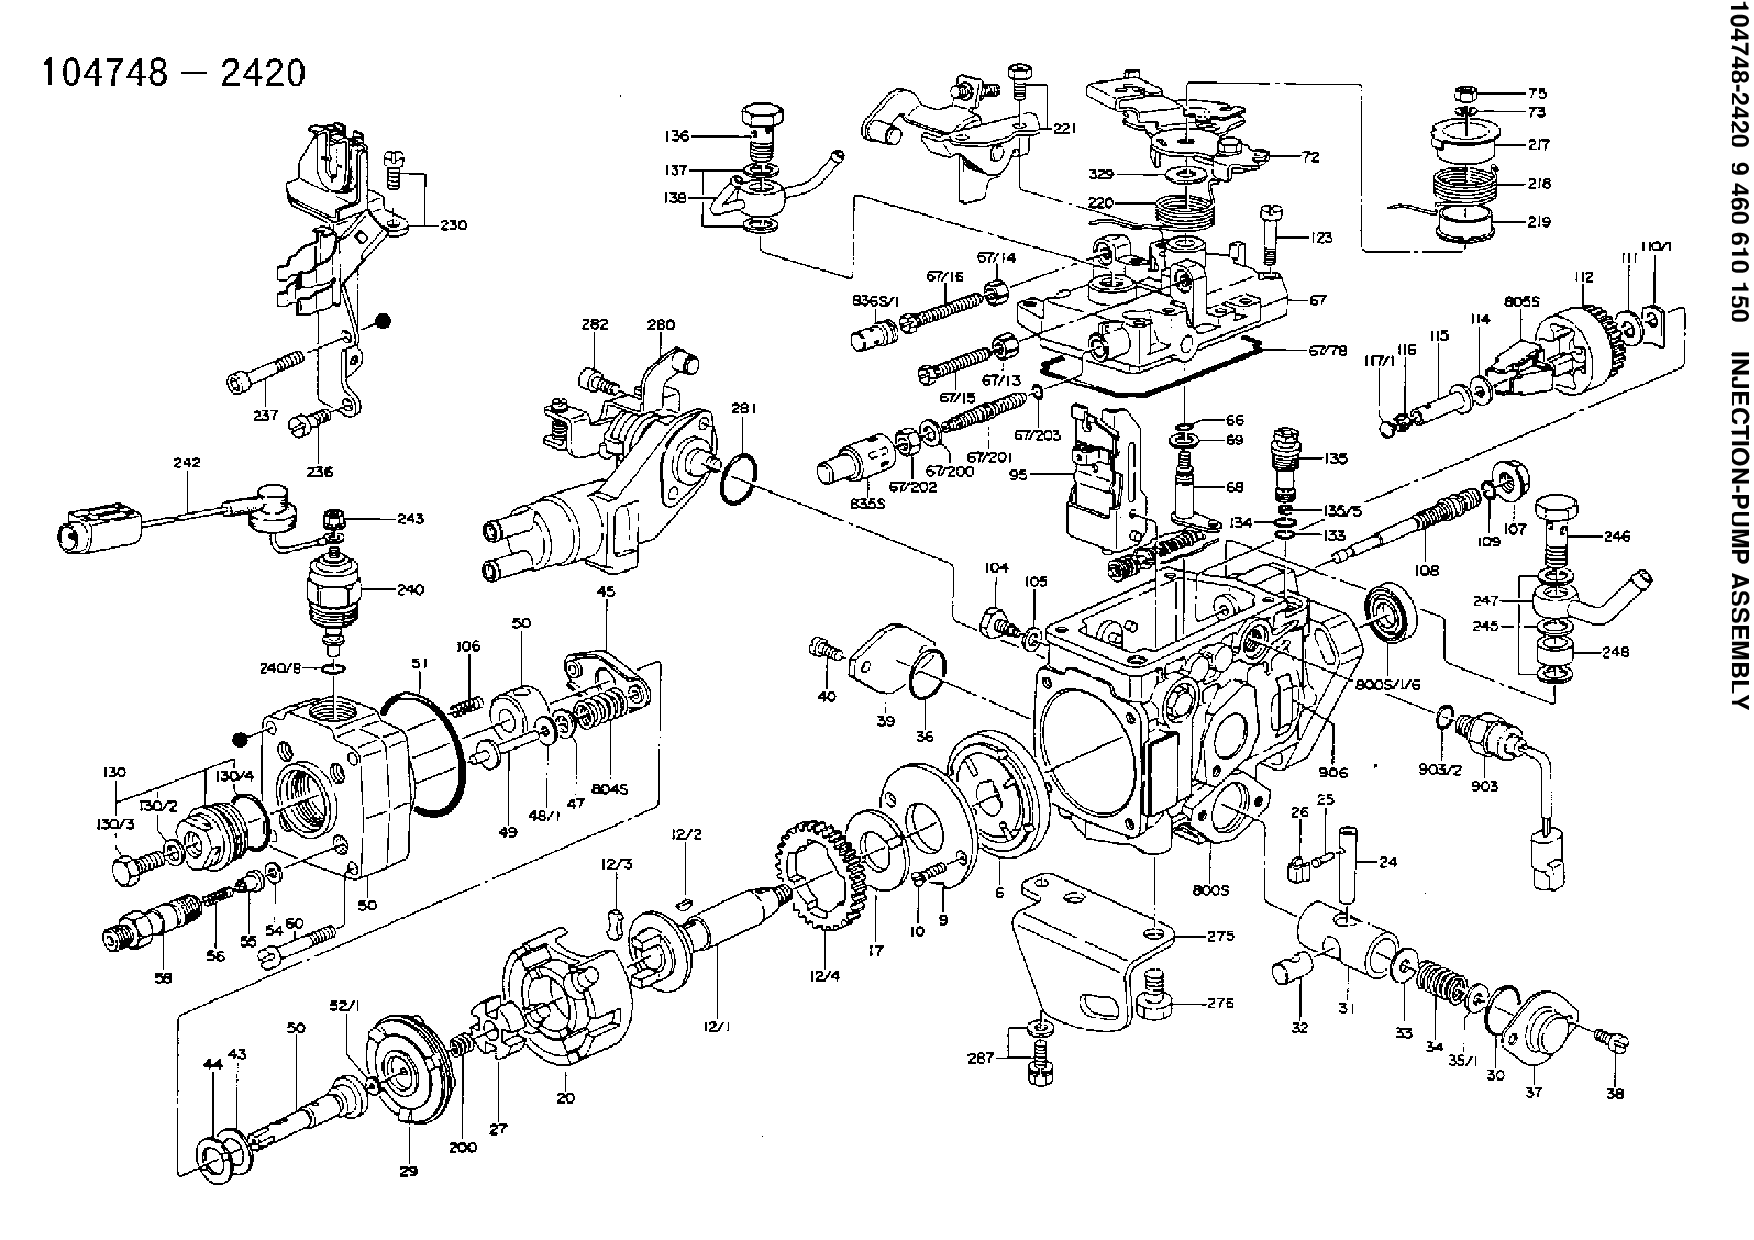 F3l1011 Deutz Sel Engine Diagram Model Parts Auto Parts